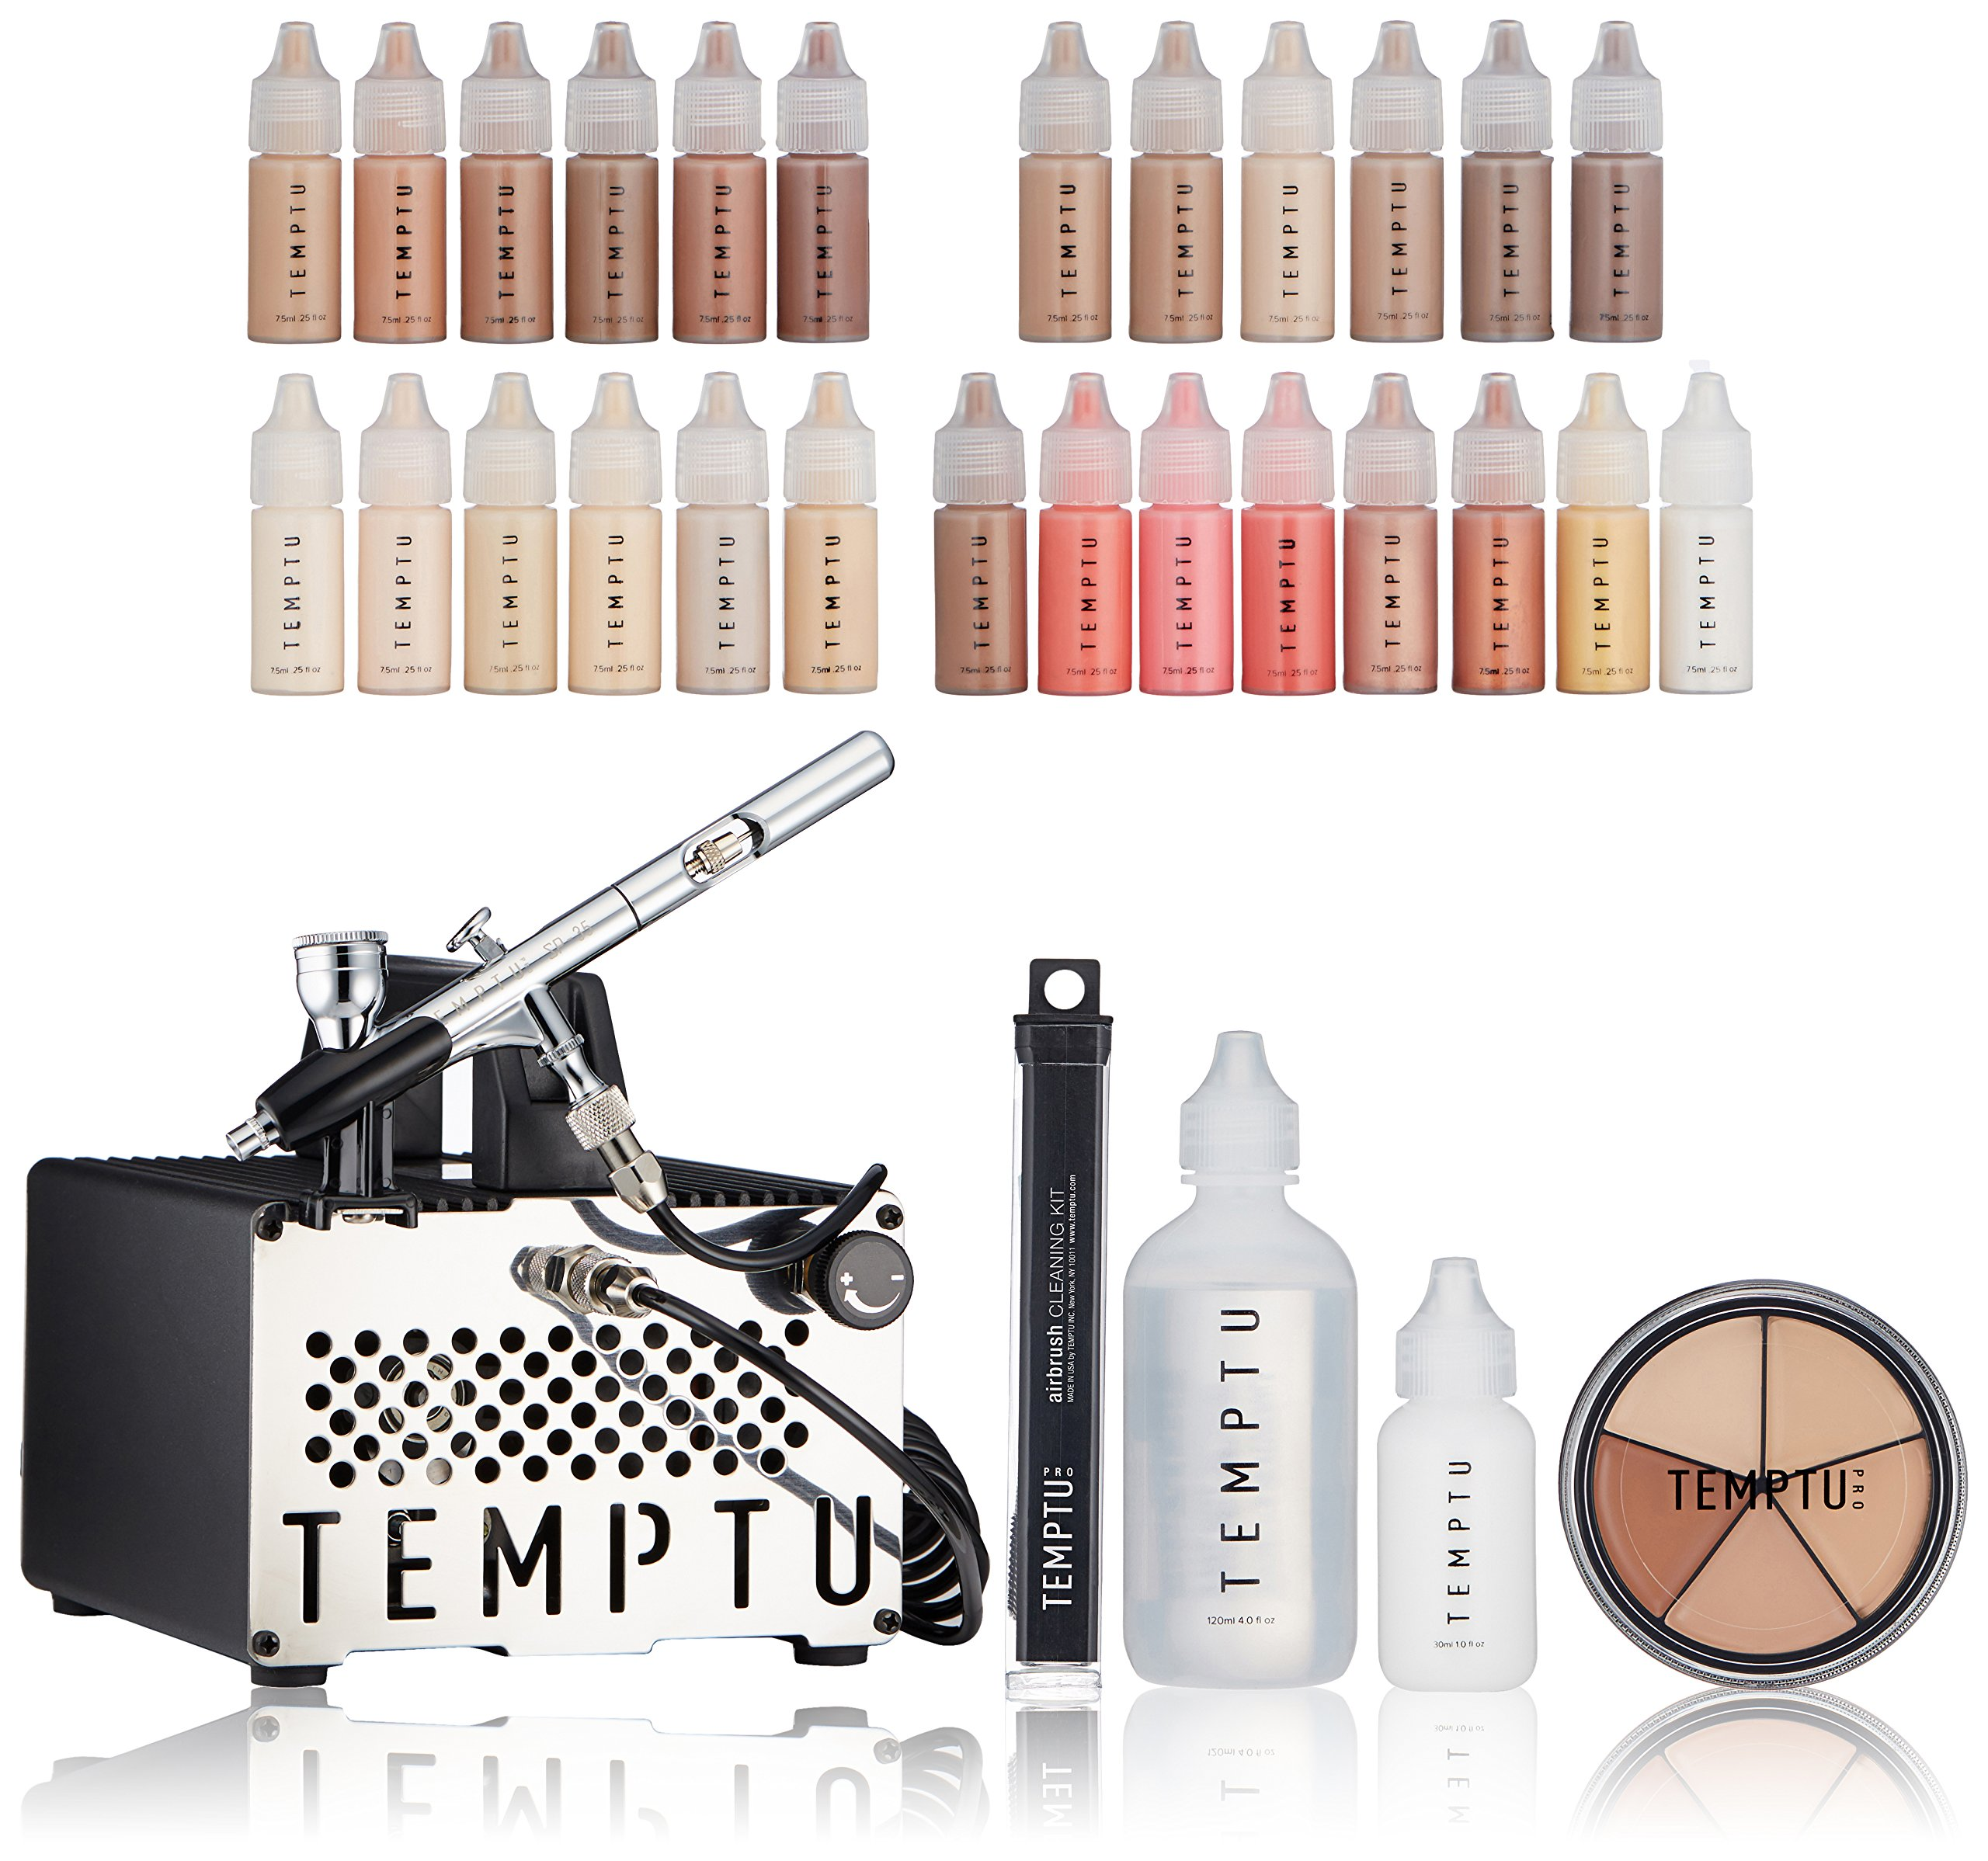 Temptu S-One Deluxe Aibrush Kit: Airbrush Makeup Set for Professionals by Temptu